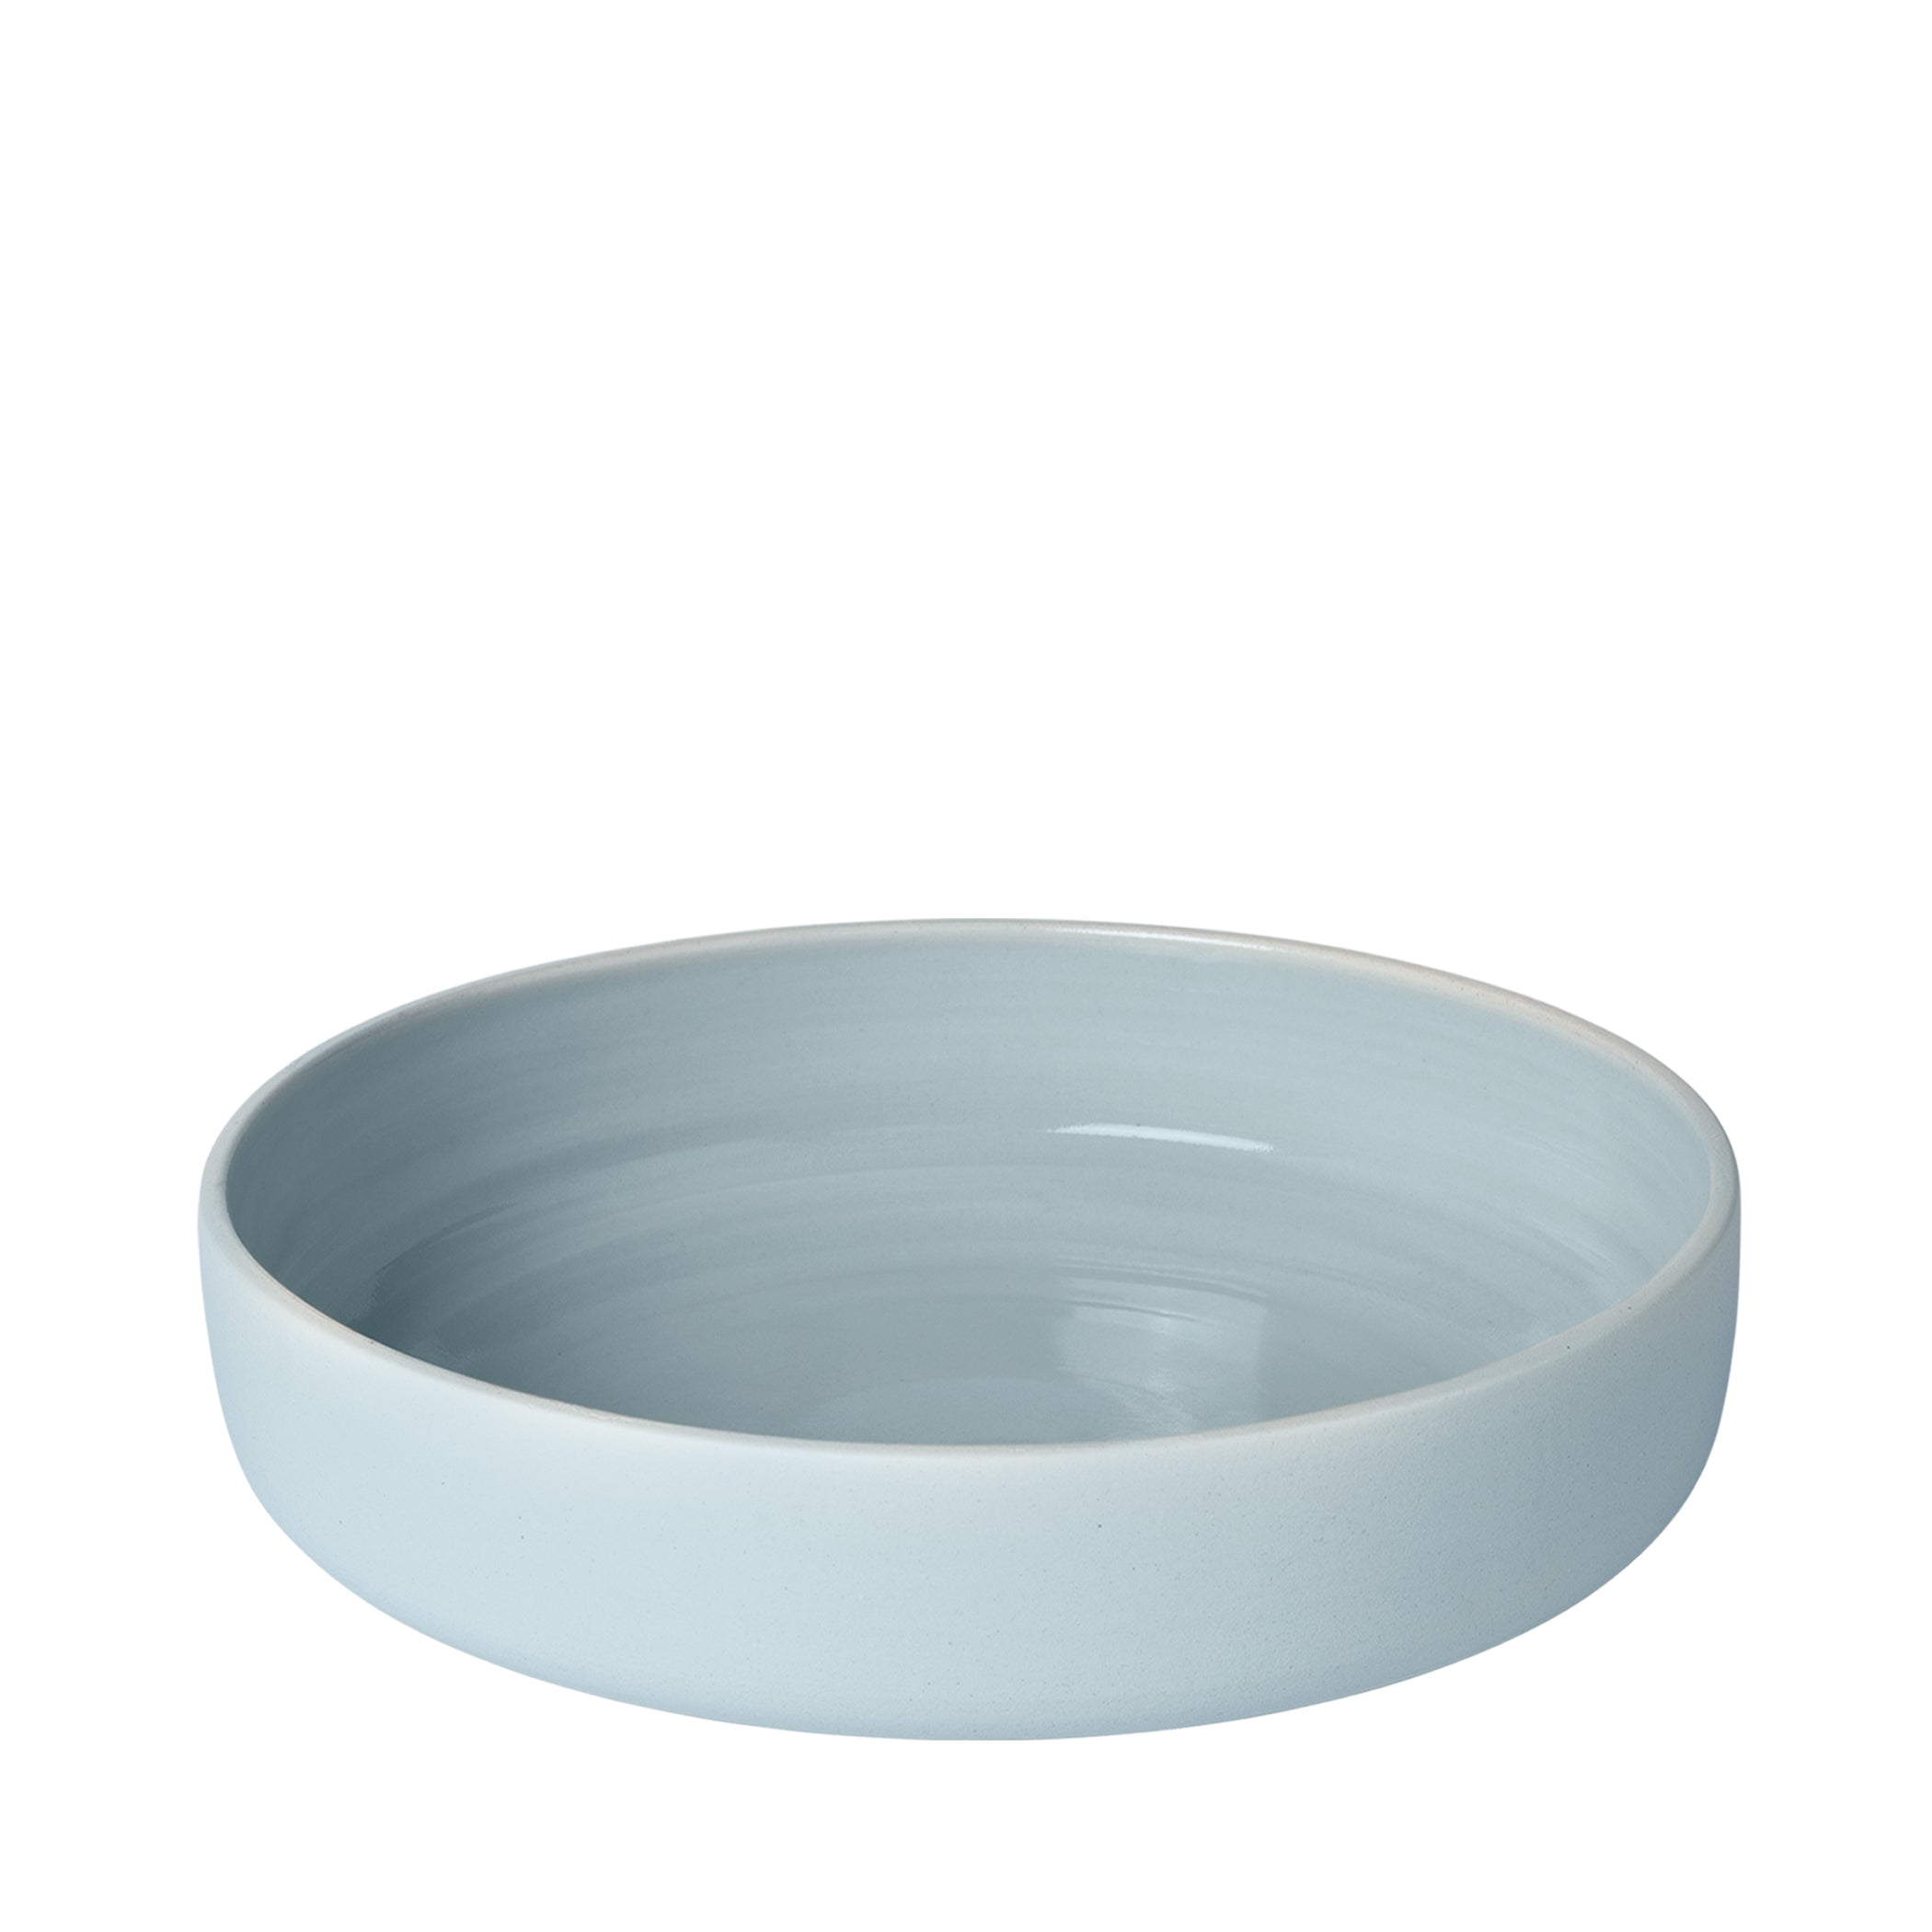 PISU 08 SKY BLUE BOWL ceramic